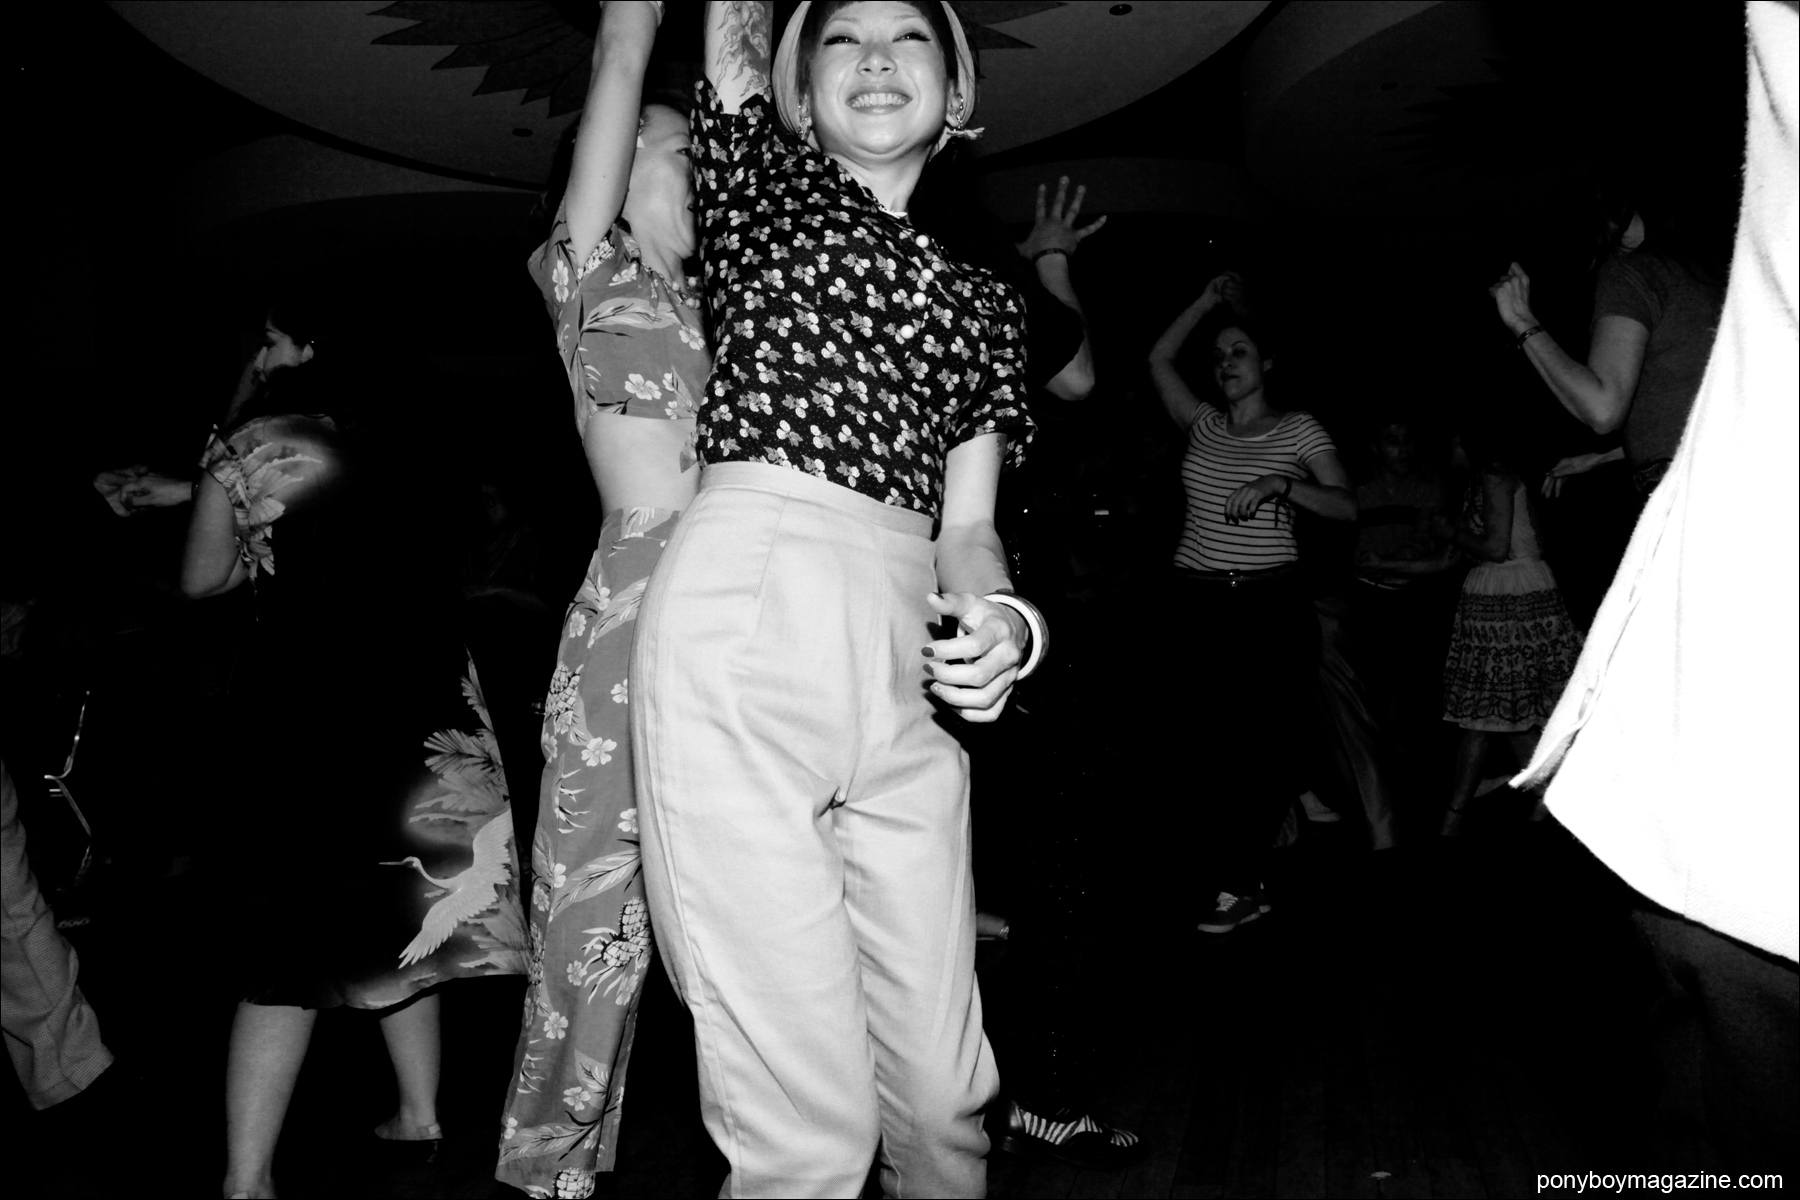 Japanese female rockabilly dancers on the dance floor at Tom Ingram's annual Viva Las Vegas weekender, photographed by Alexander Thompson for Ponyboy Magazine.